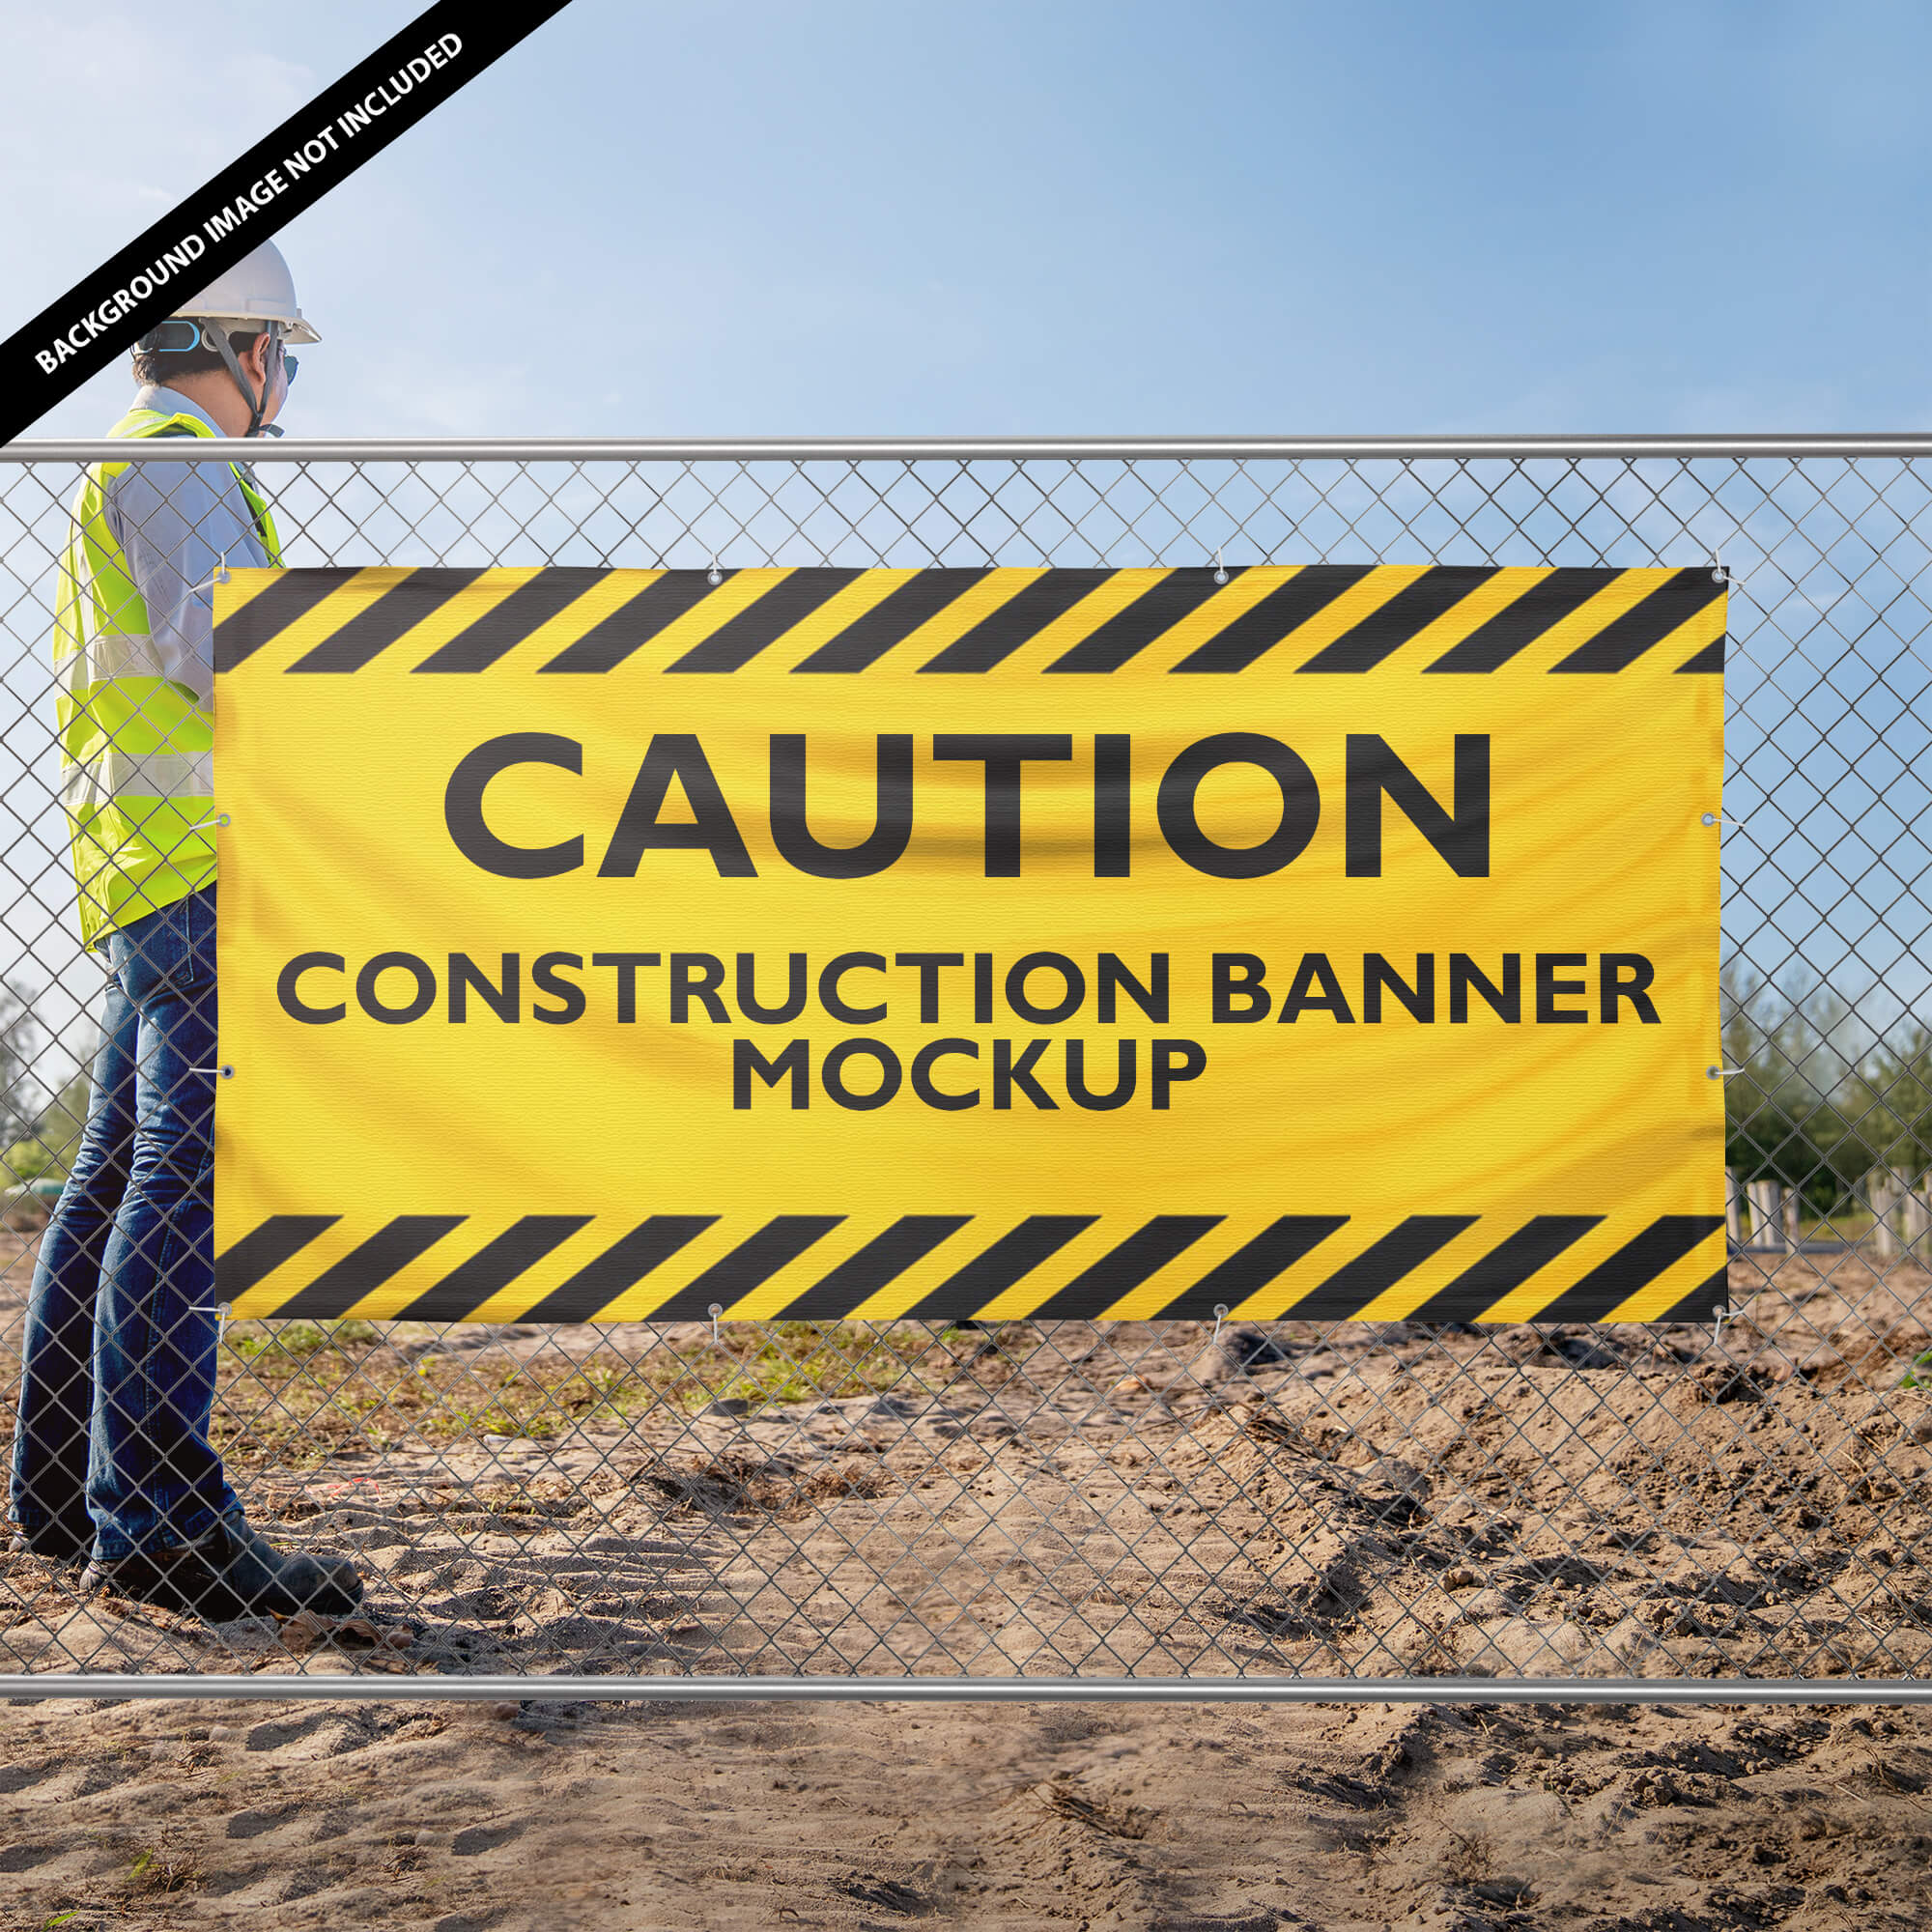 Free Construction Banner Mockup PSD Template